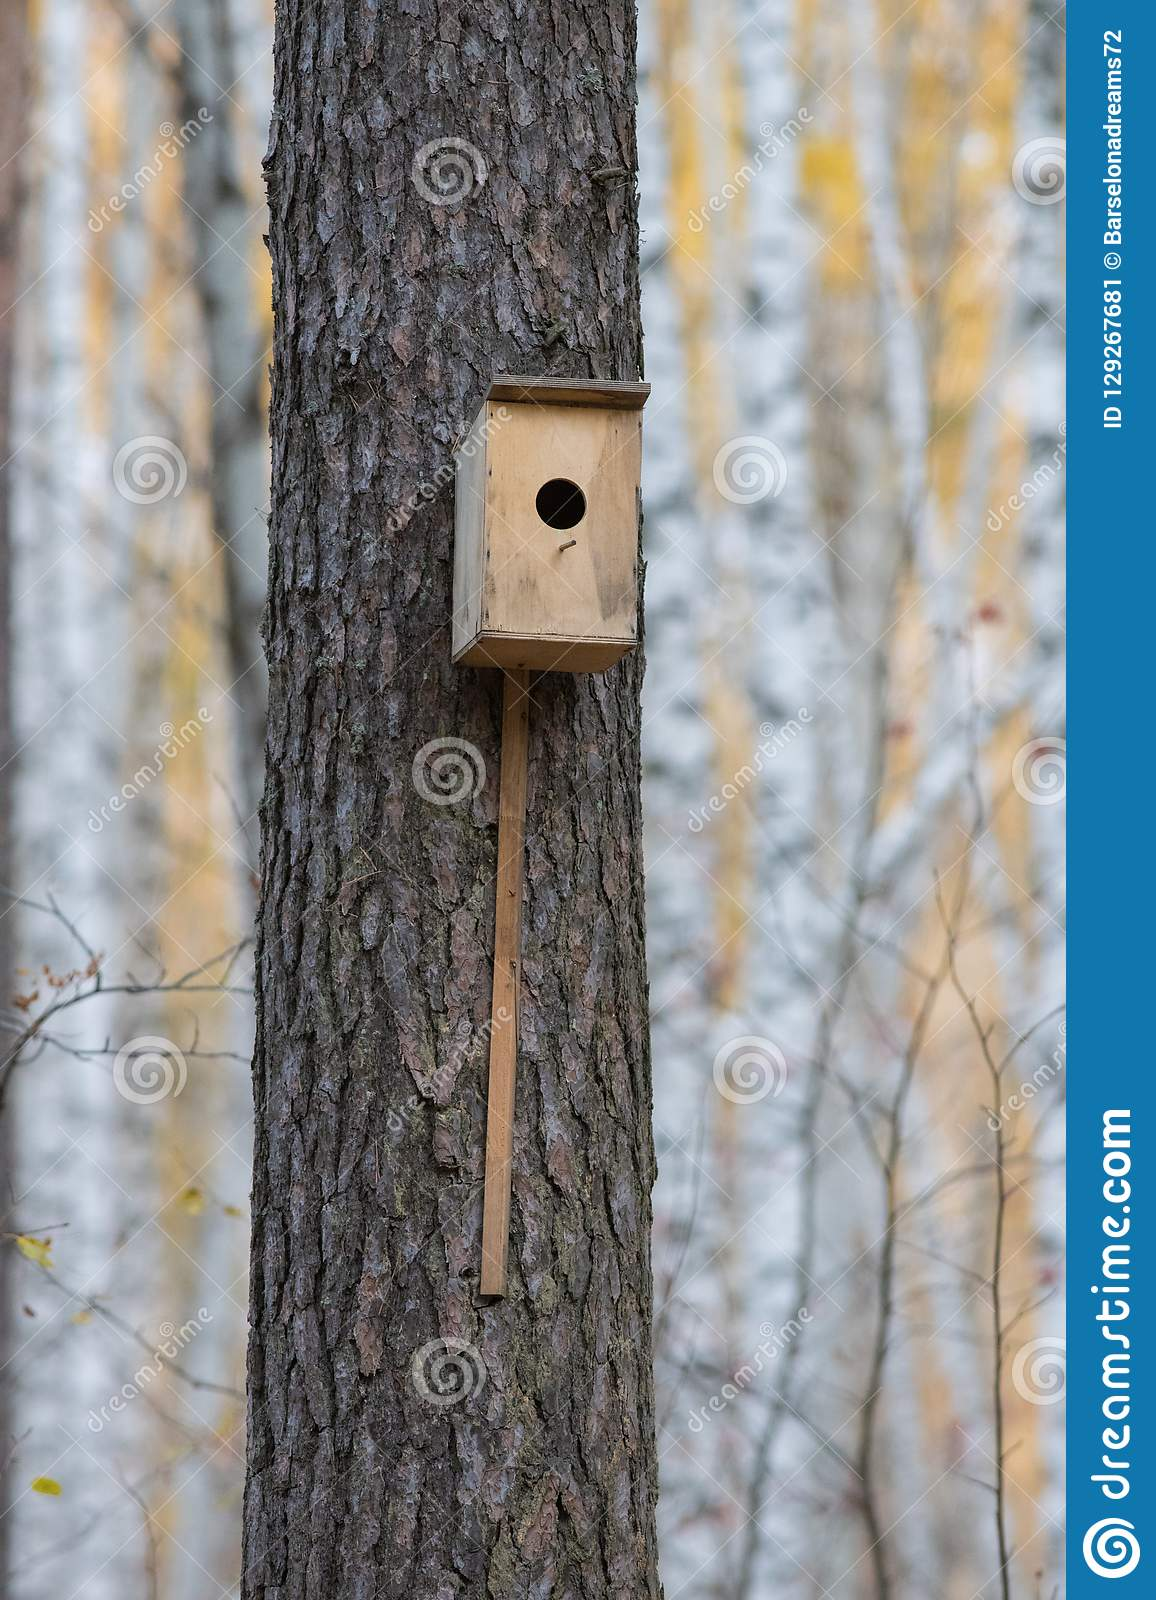 Bird house hanging from the tree with the entrance hole in the shape of a circle in autumn forest